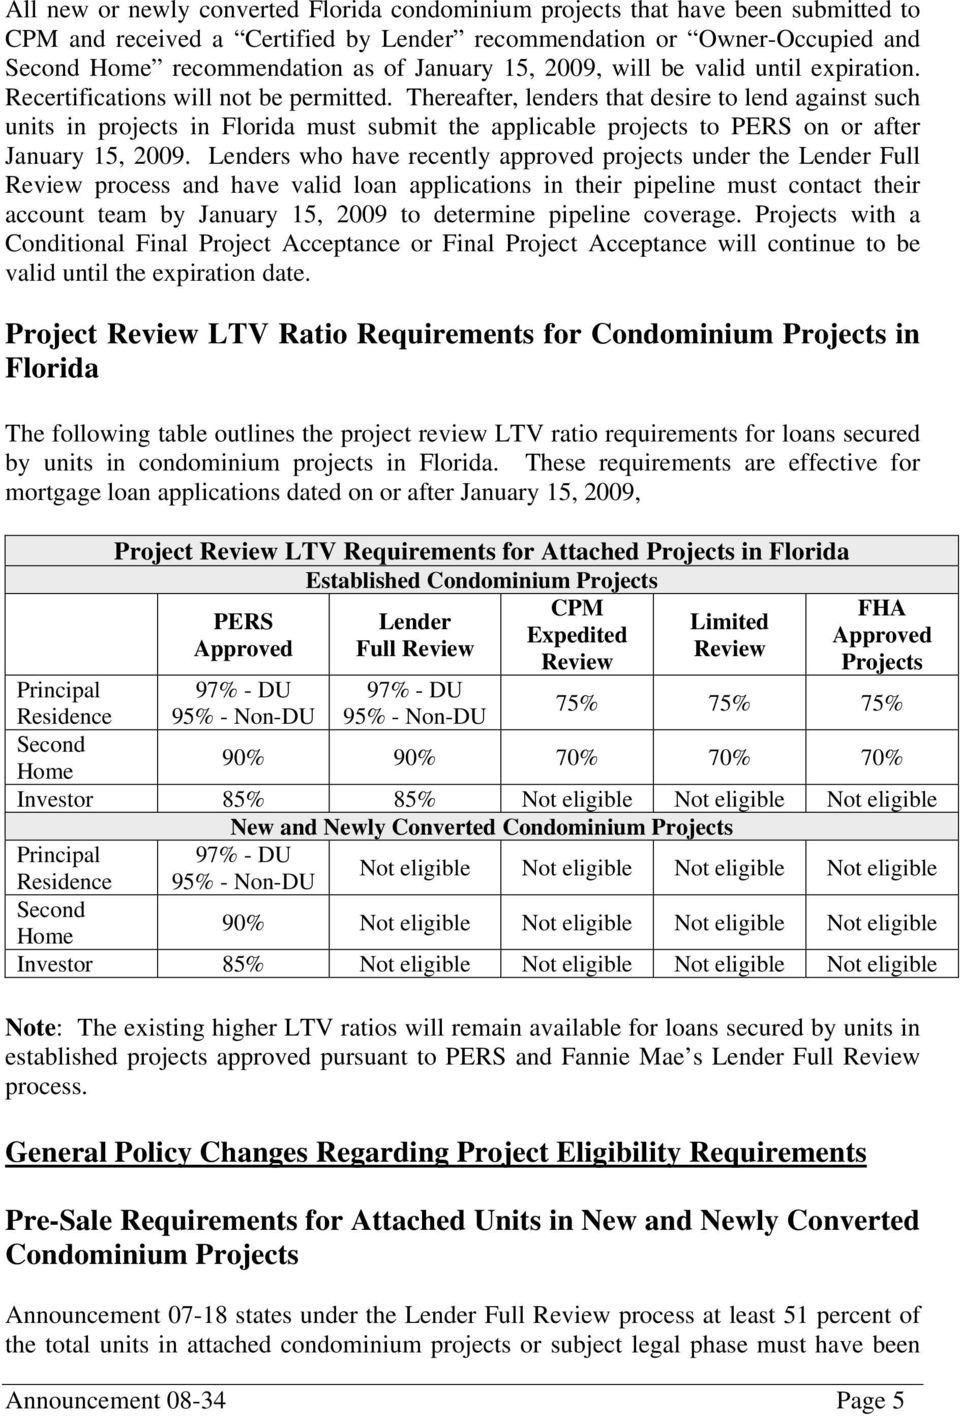 Thereafter, lenders that desire to lend against such units in projects in Florida must submit the applicable projects to PERS on or after January 15, 2009.